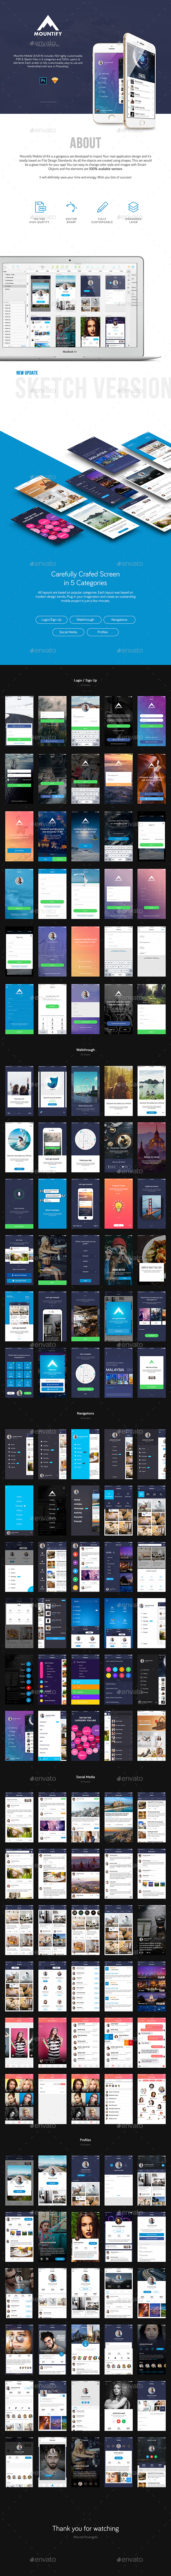 Melo - Android Ui Kit (User Interfaces)